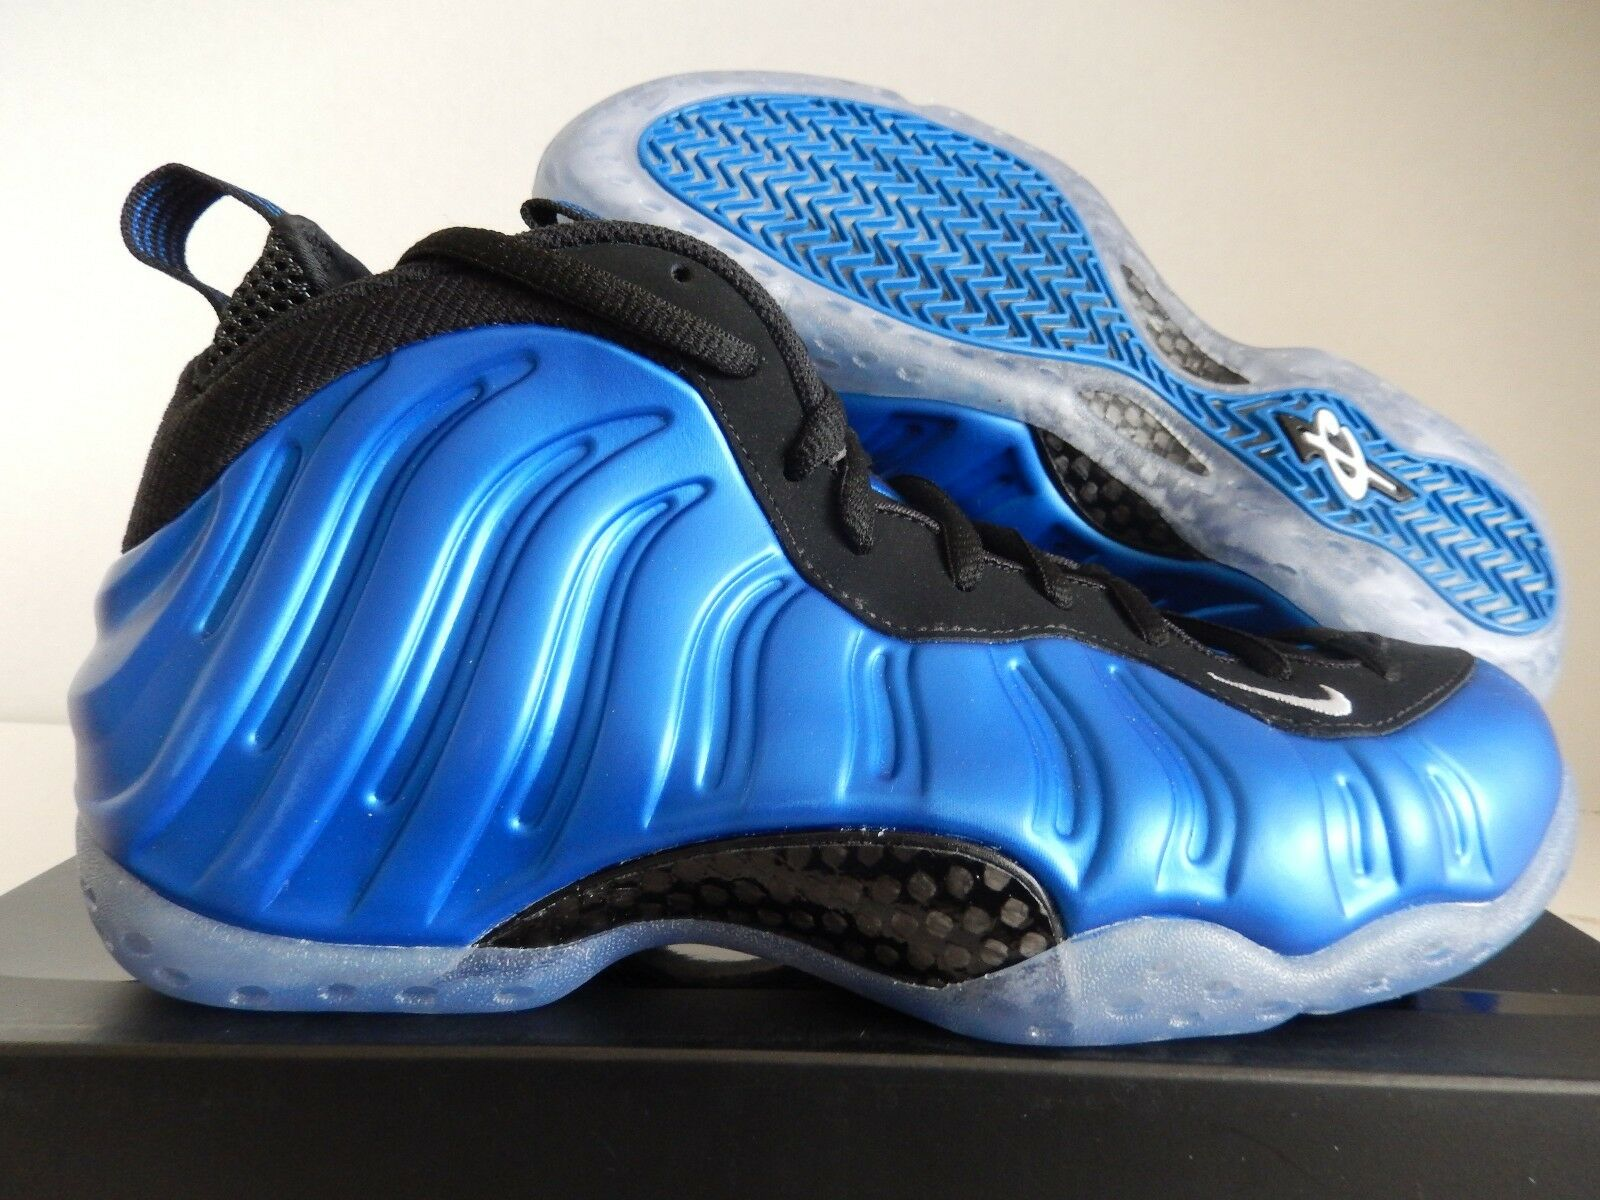 NIKE AIR FOAMPOSITE ONE XX 20TH ANNIVERSARY NEON ROYAL Bleu SZ 8 [895320-500]